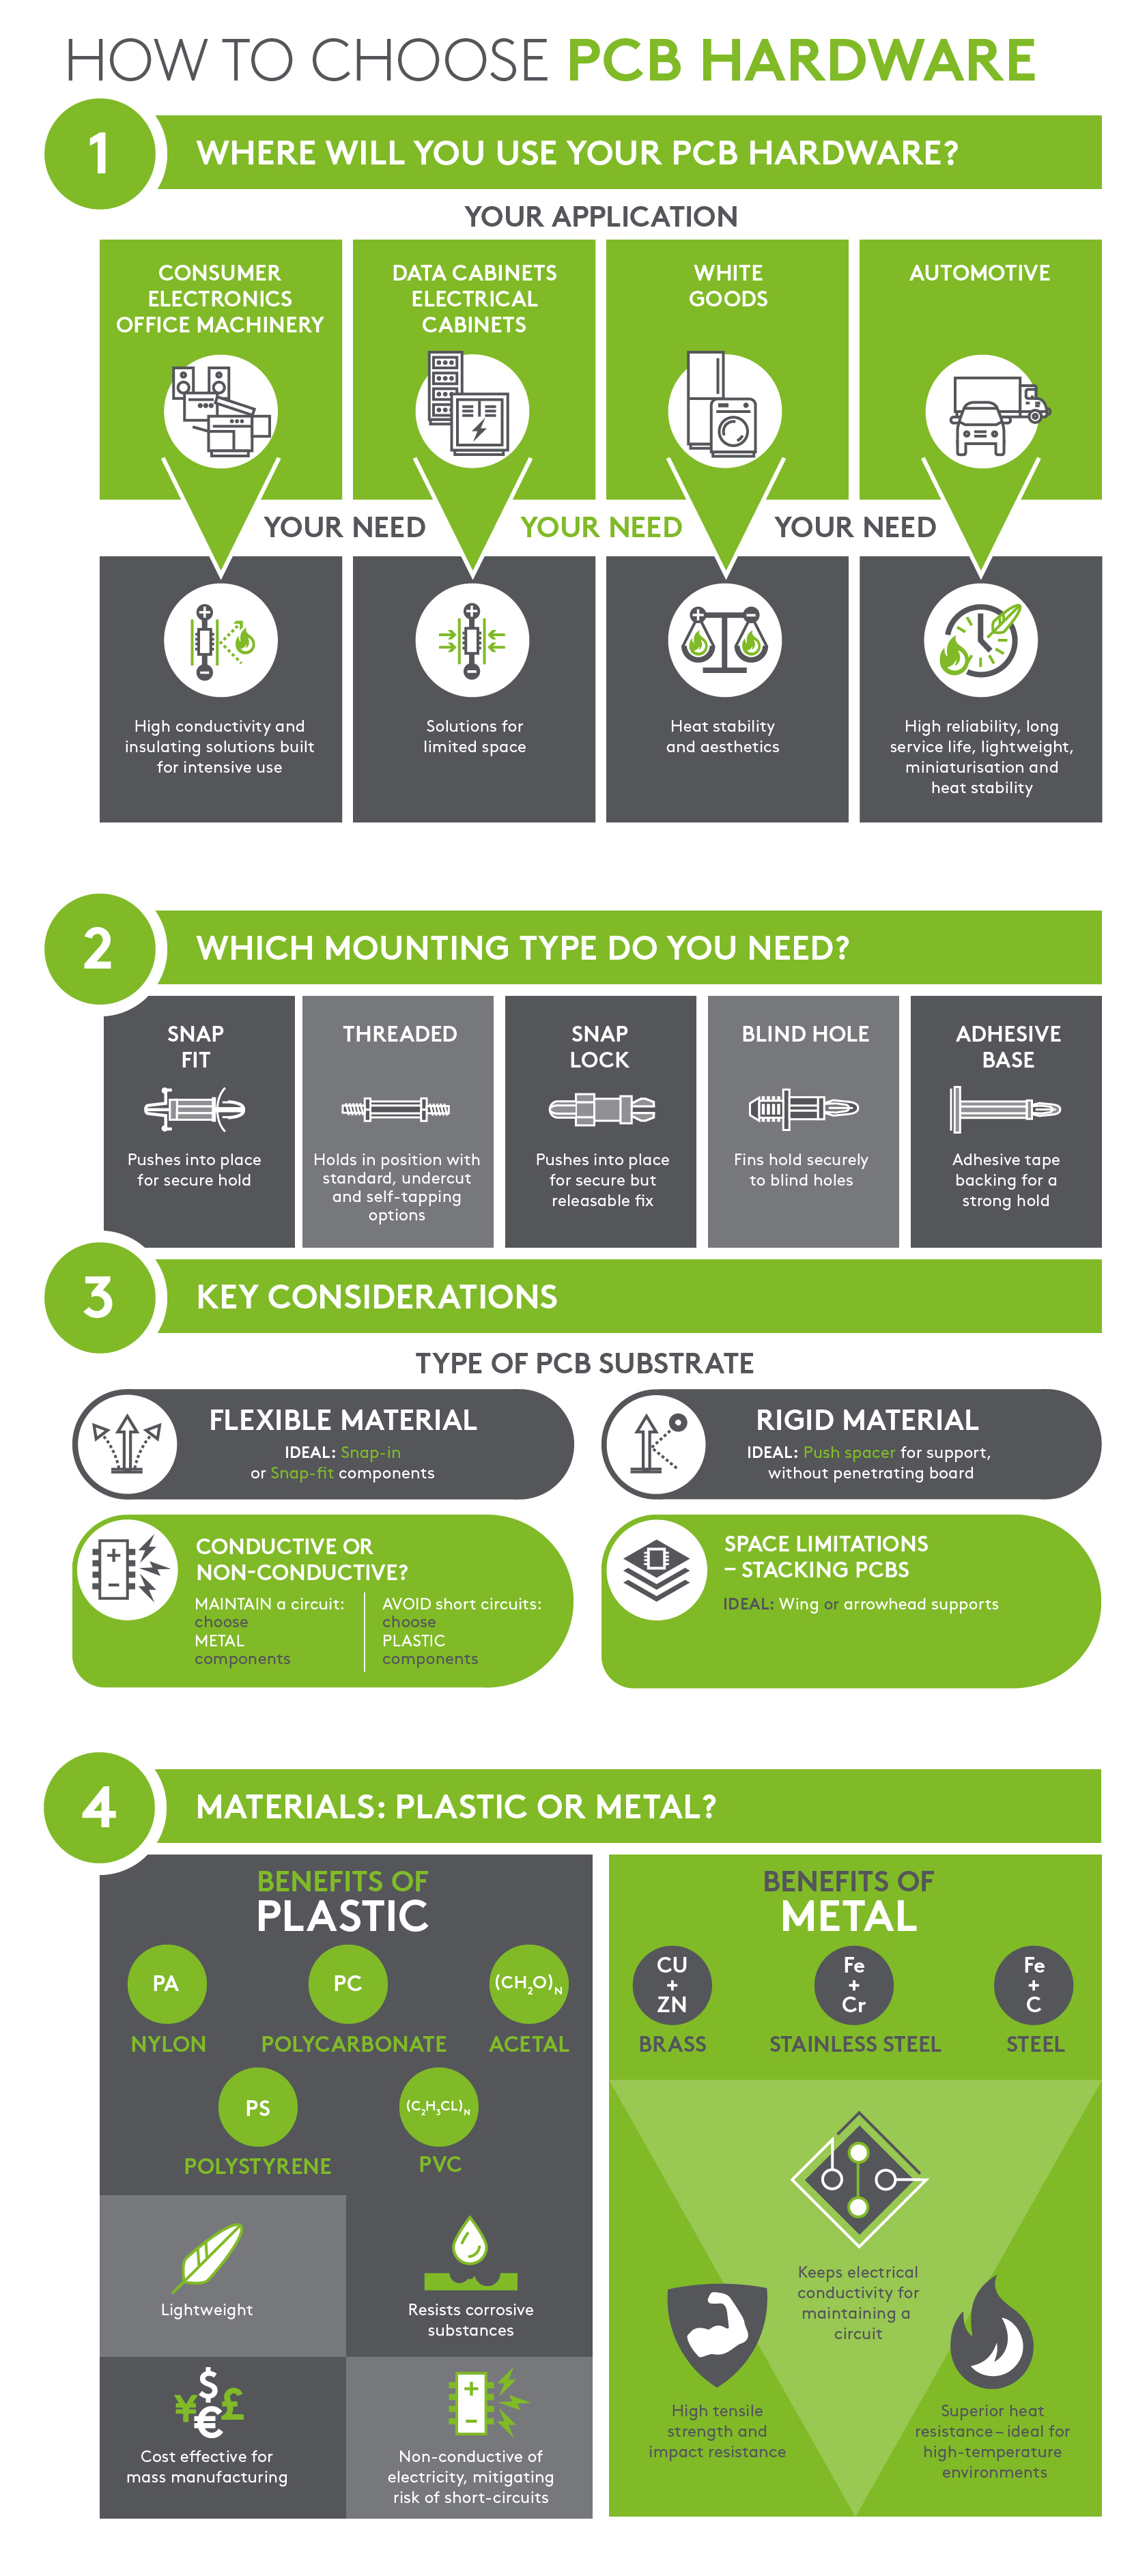 How to choose PCB Hardware - Infographic